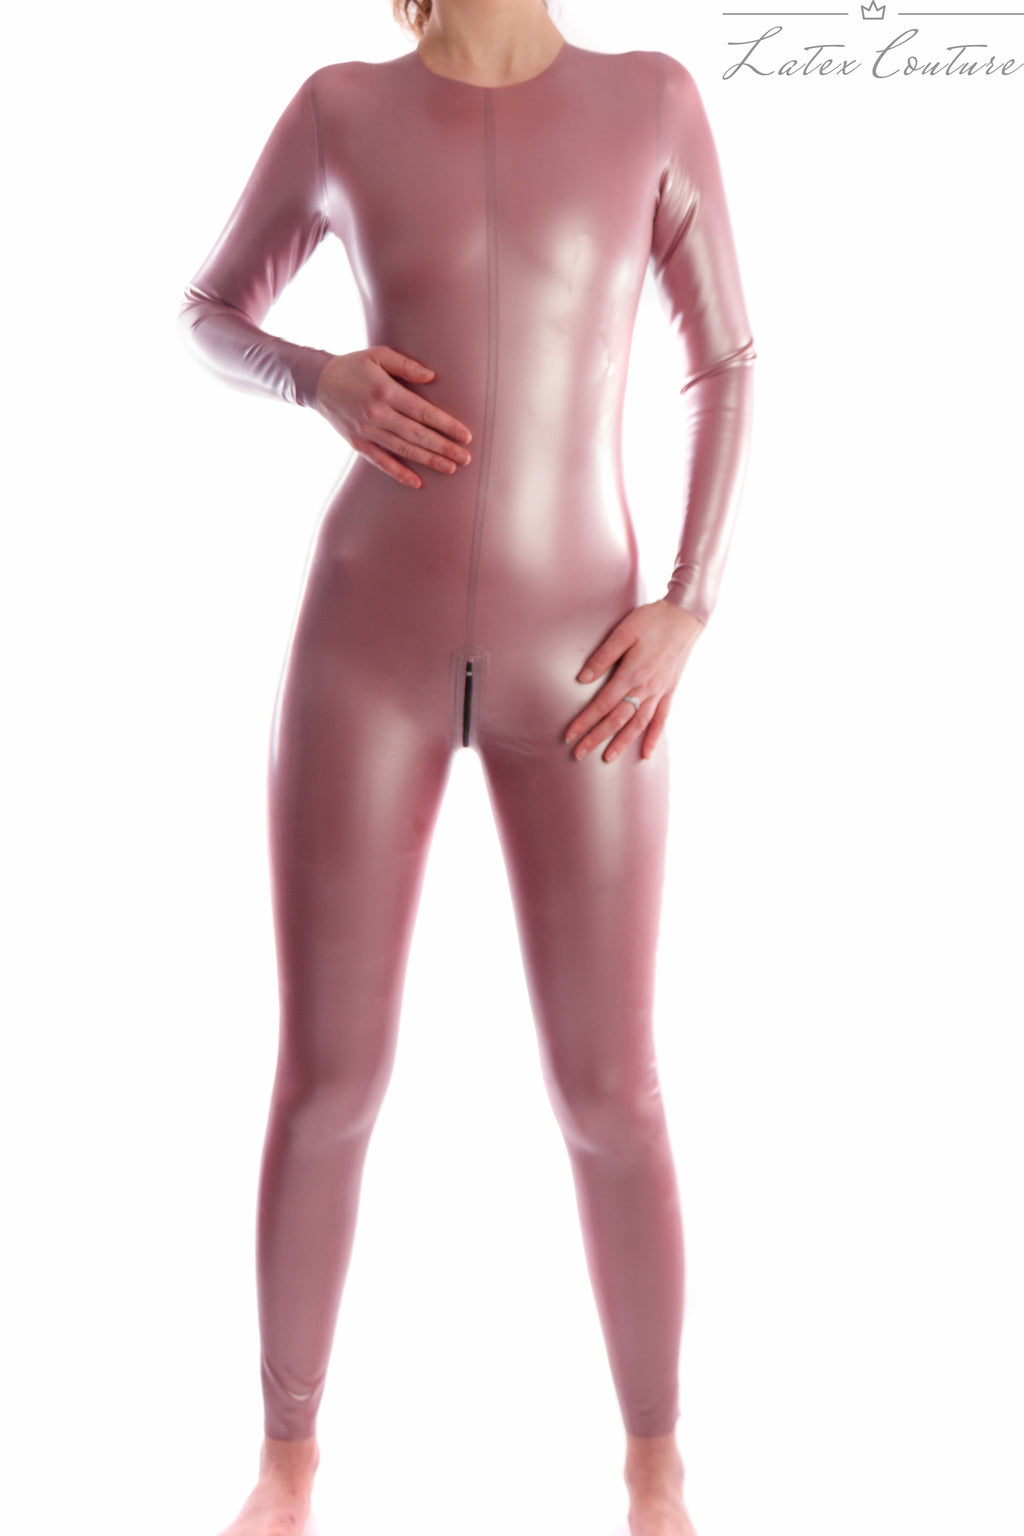 Latex Catsuit - Latex Collarless Catsuit